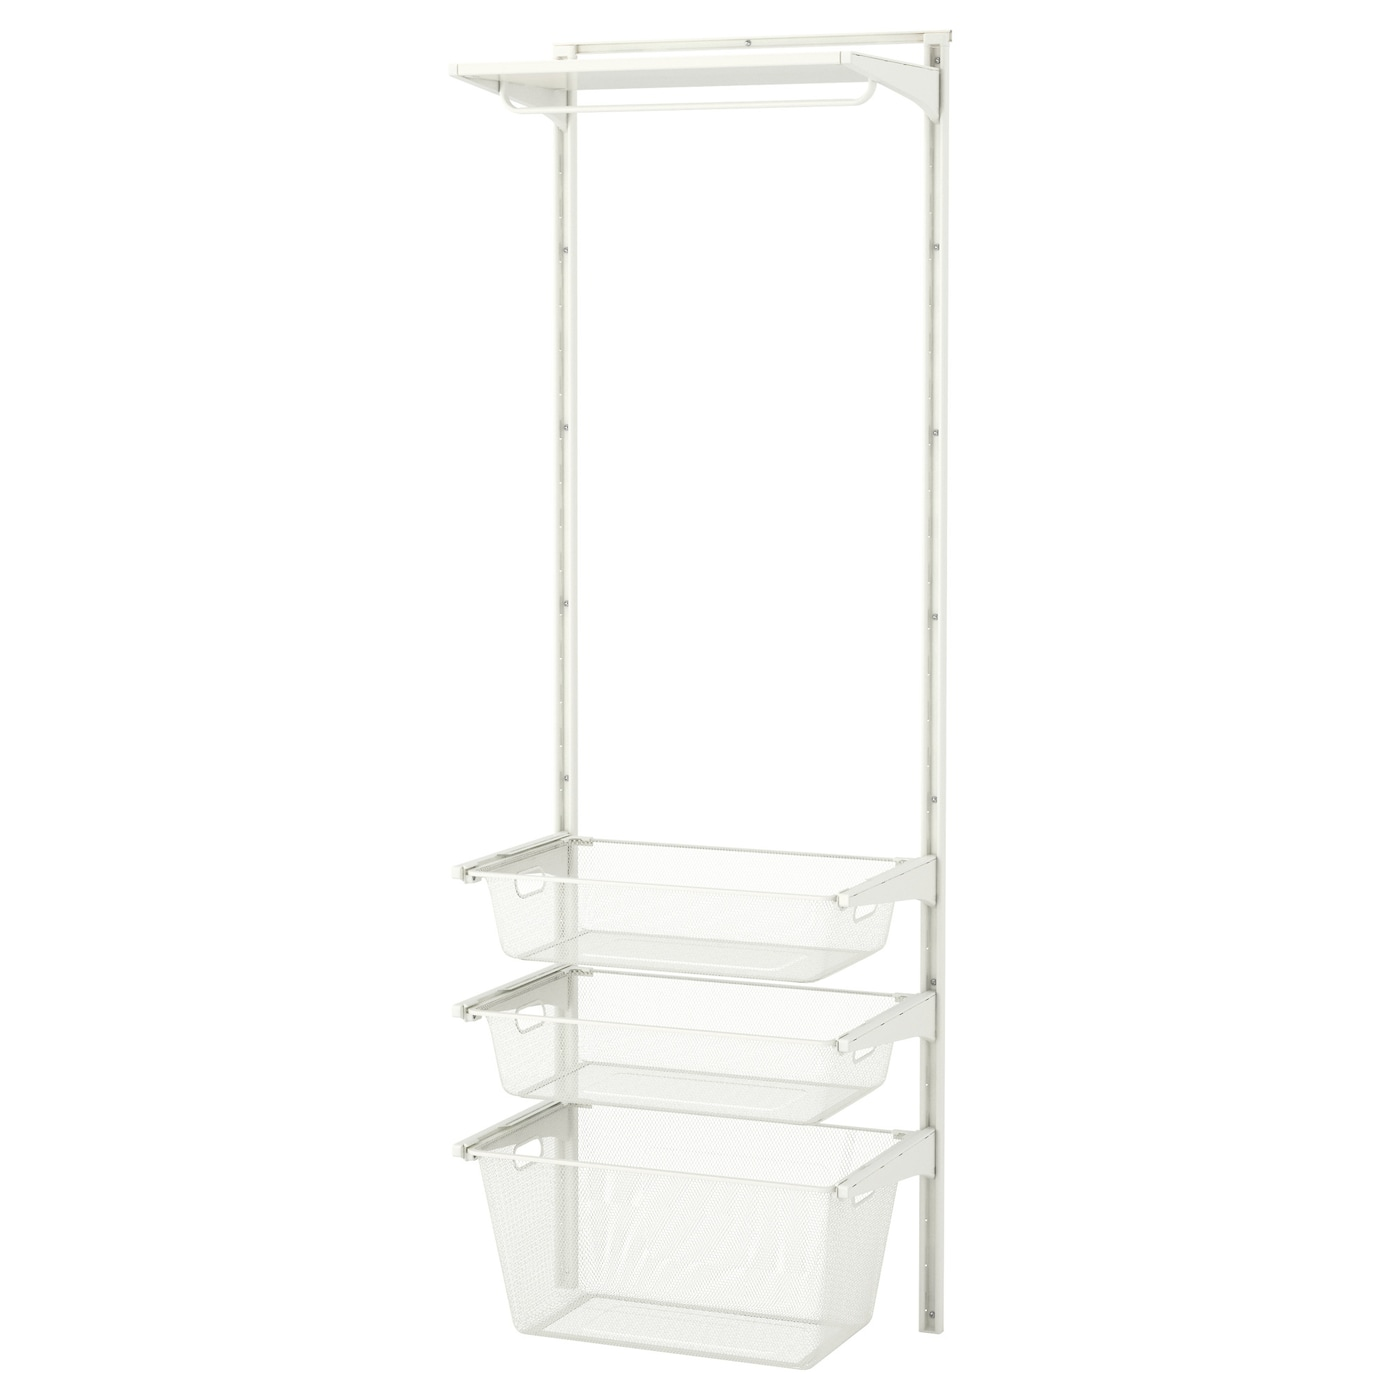 IKEA ALGOT wall upright/mesh baskets Can also be used in bathrooms and other damp areas indoors.